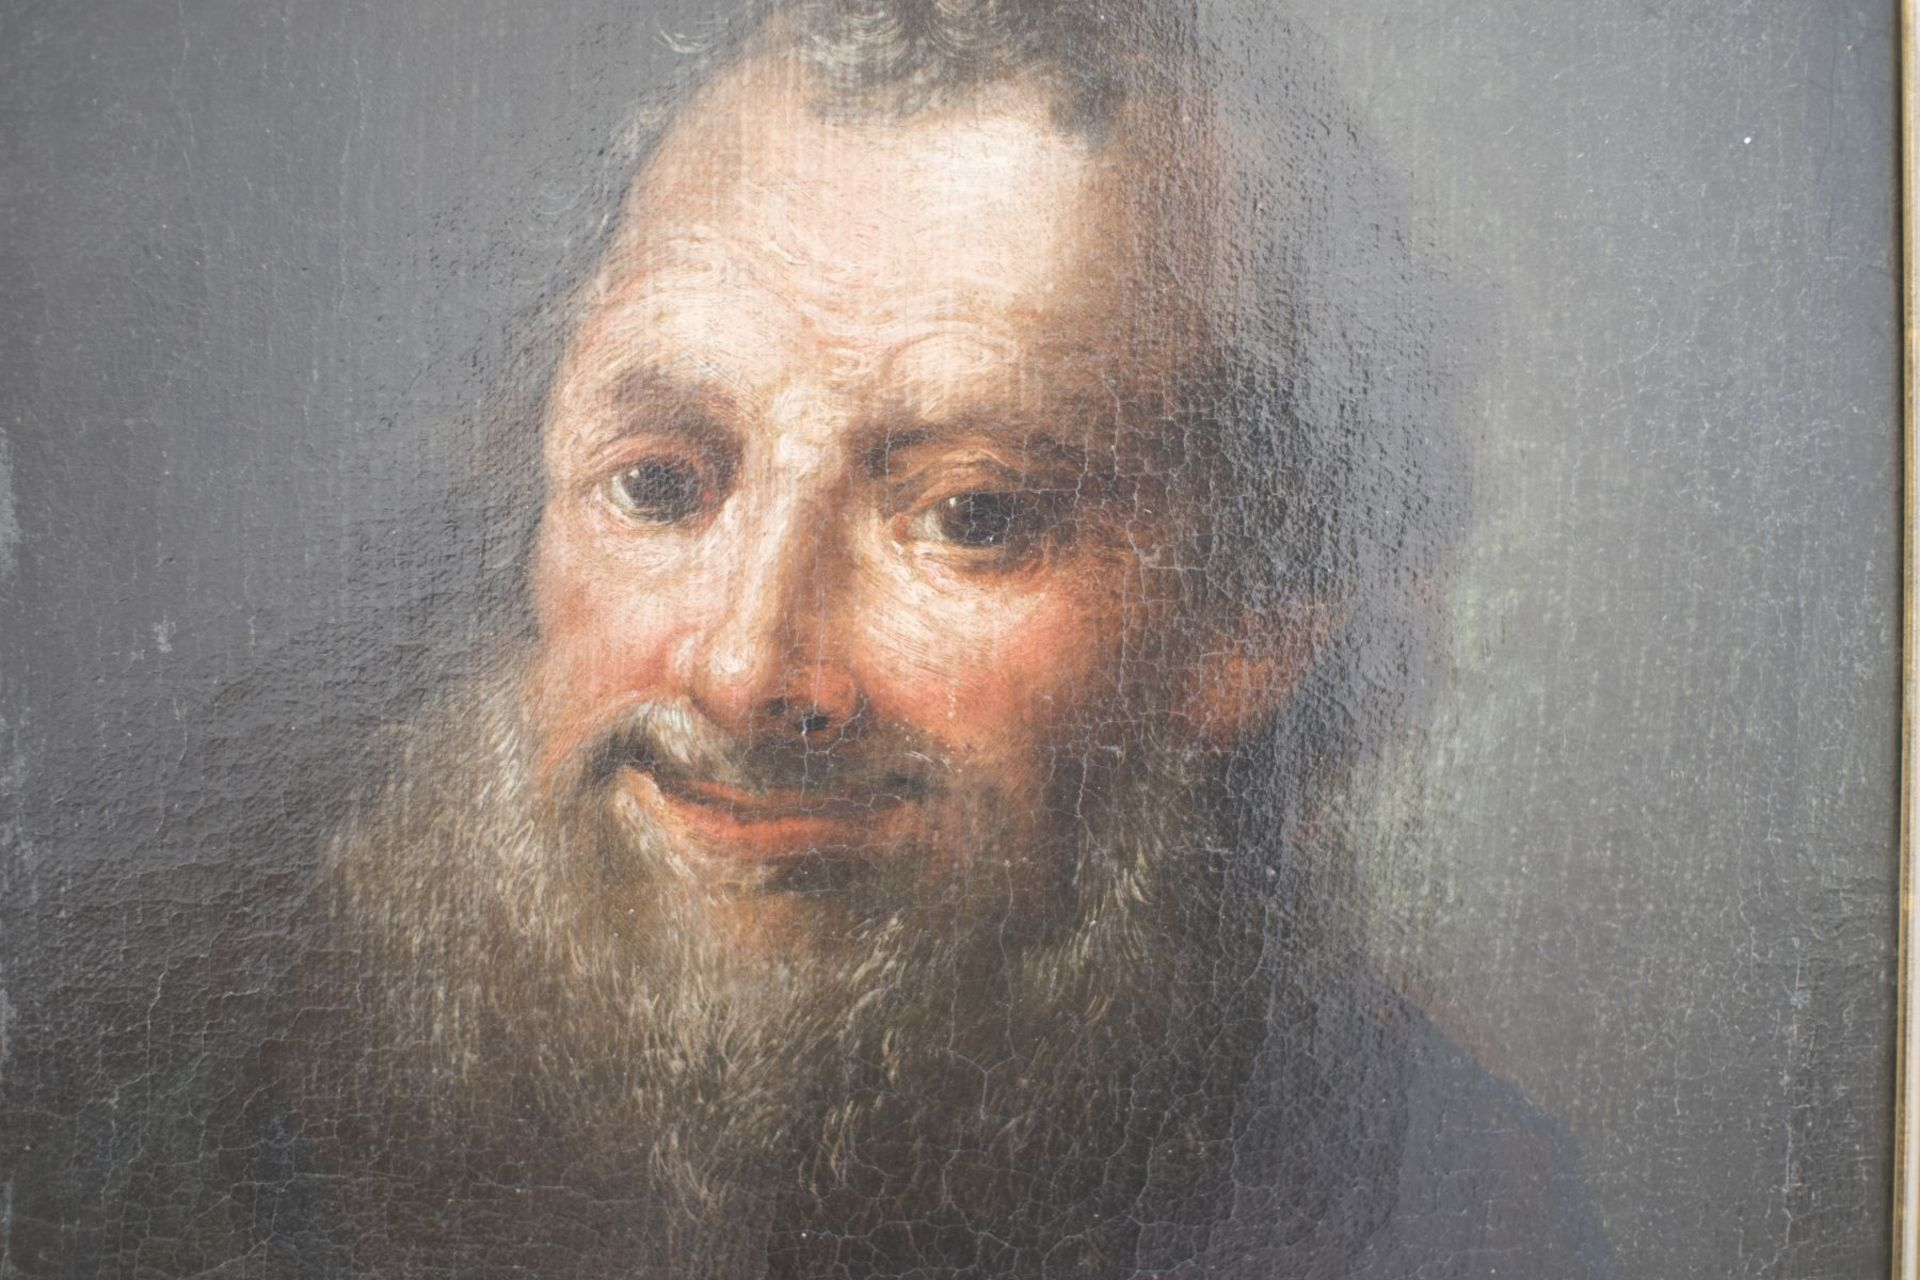 """Historism painter around 1850 """"Old man with beard"""" - Image 2 of 4"""